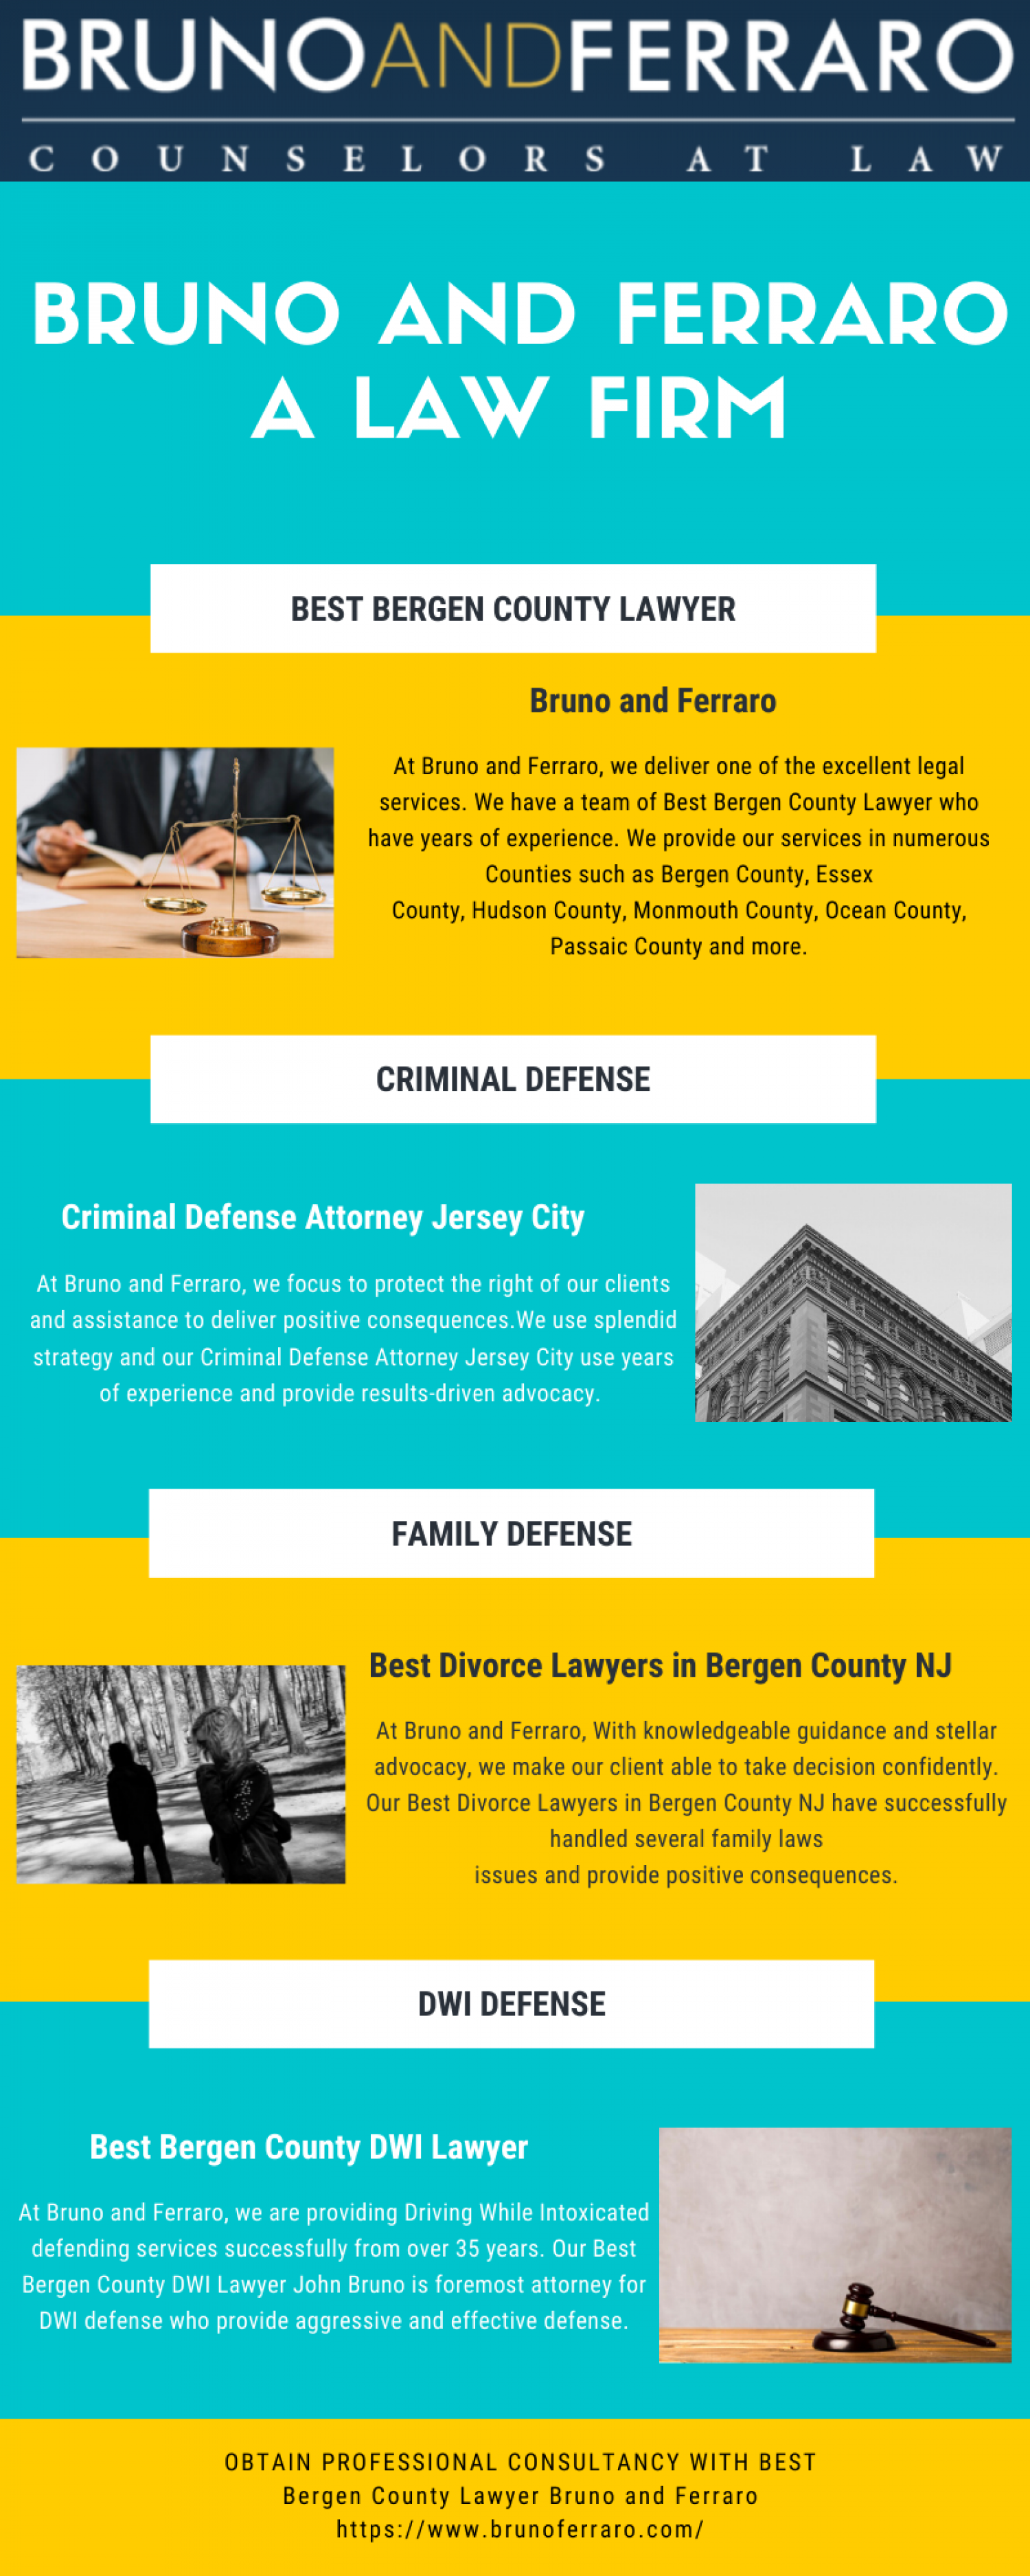 Quest Premium Criminal Defense Attorney Jersey City for Excellent Consultancy  Infographic